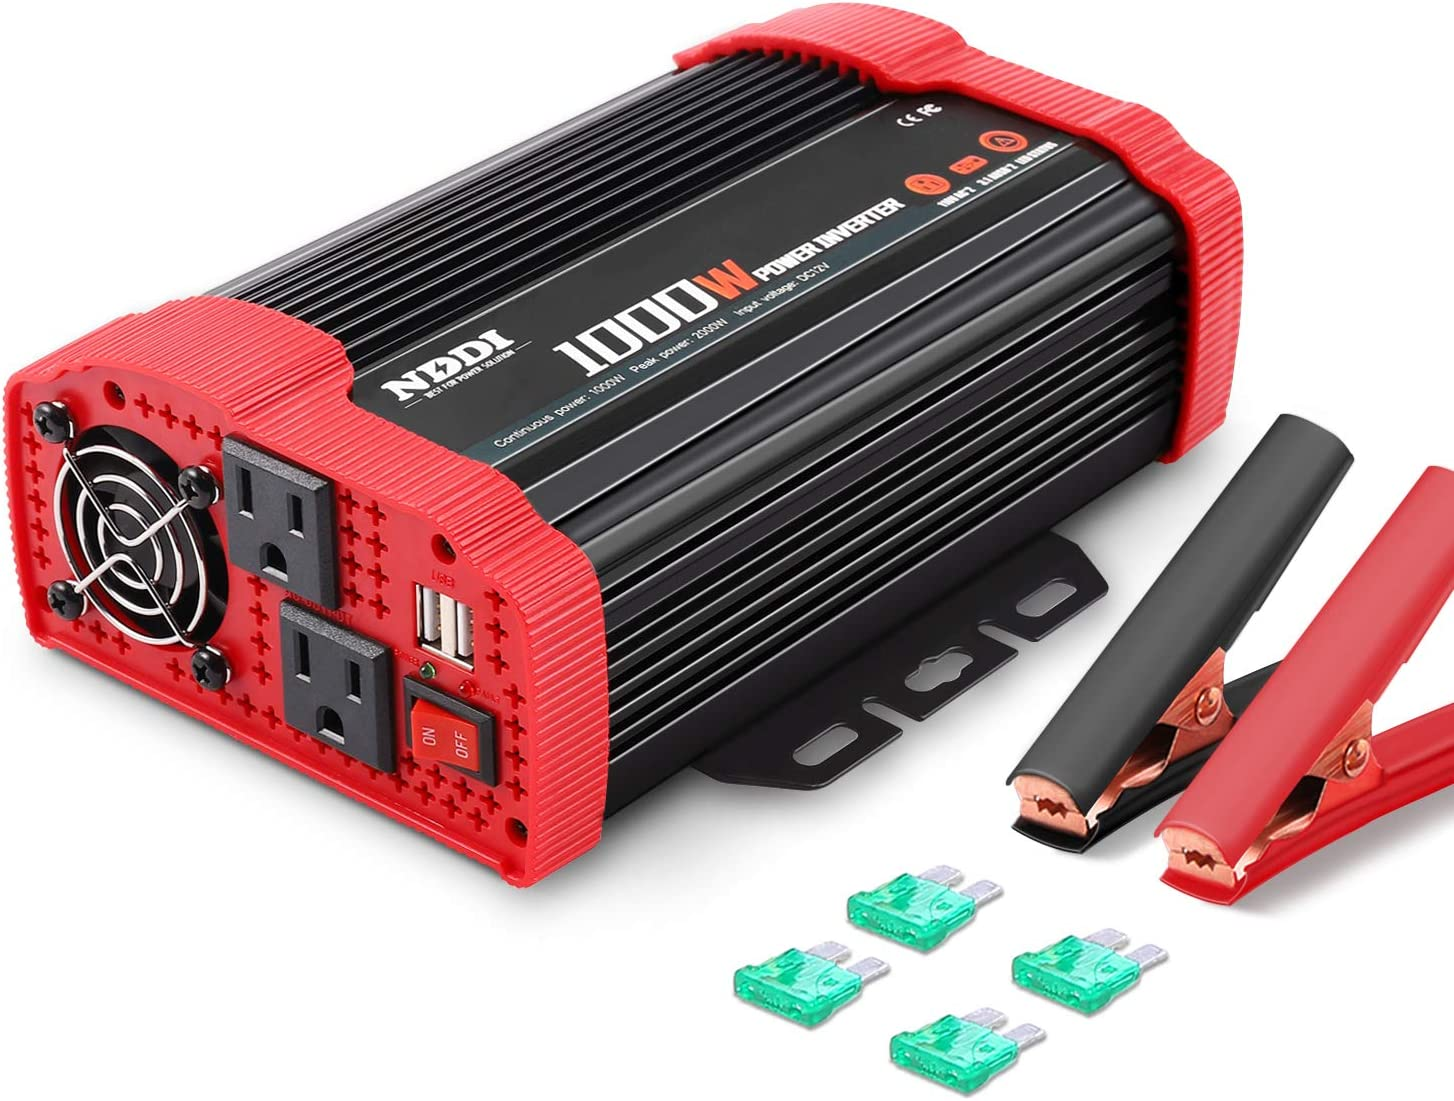 NDDI 1000W Car Power Inverter 12V DC to 110V AC Converter with Dual AC Outlets and 3.1A Quick Charging USB Port Car Adapter